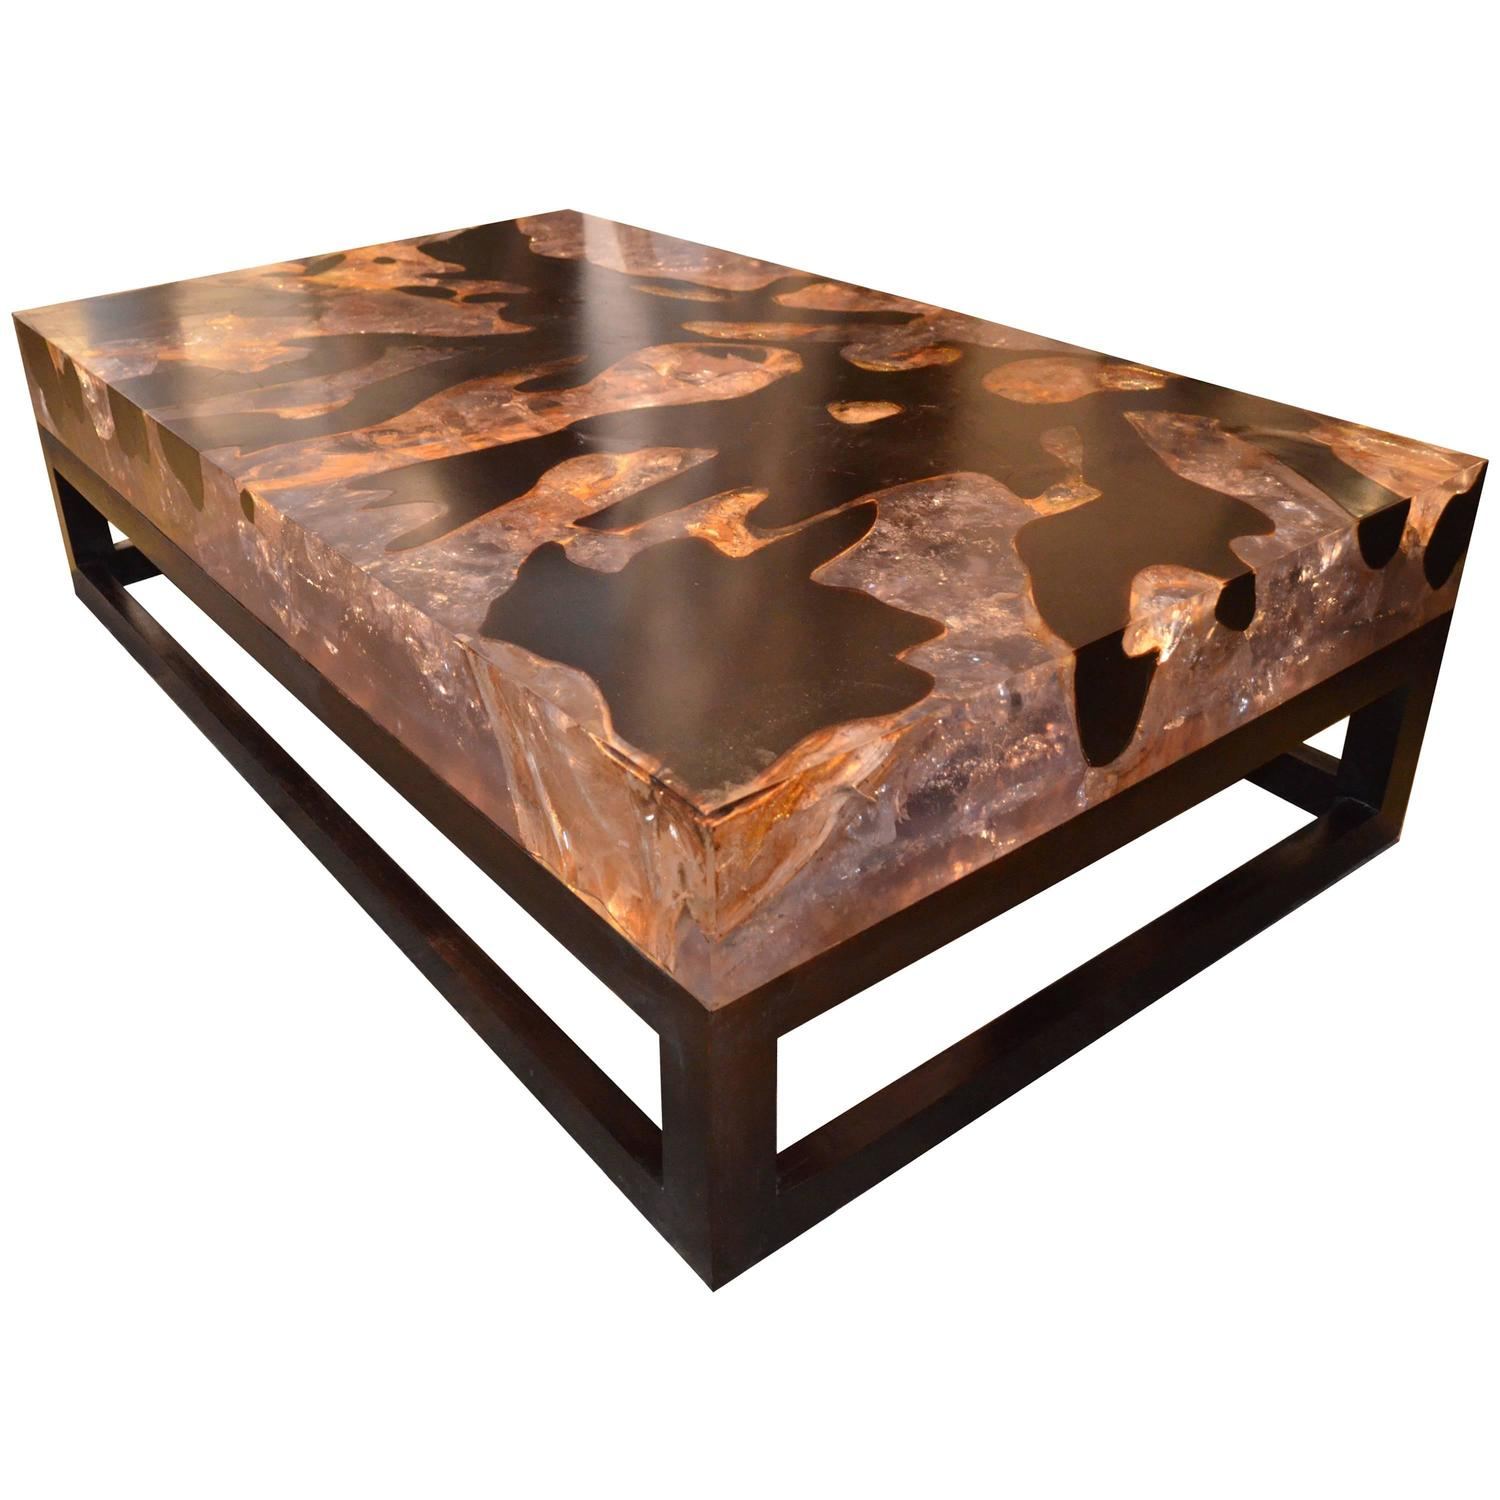 cracked resin coffee table with base for sale at 1stdibs. Black Bedroom Furniture Sets. Home Design Ideas